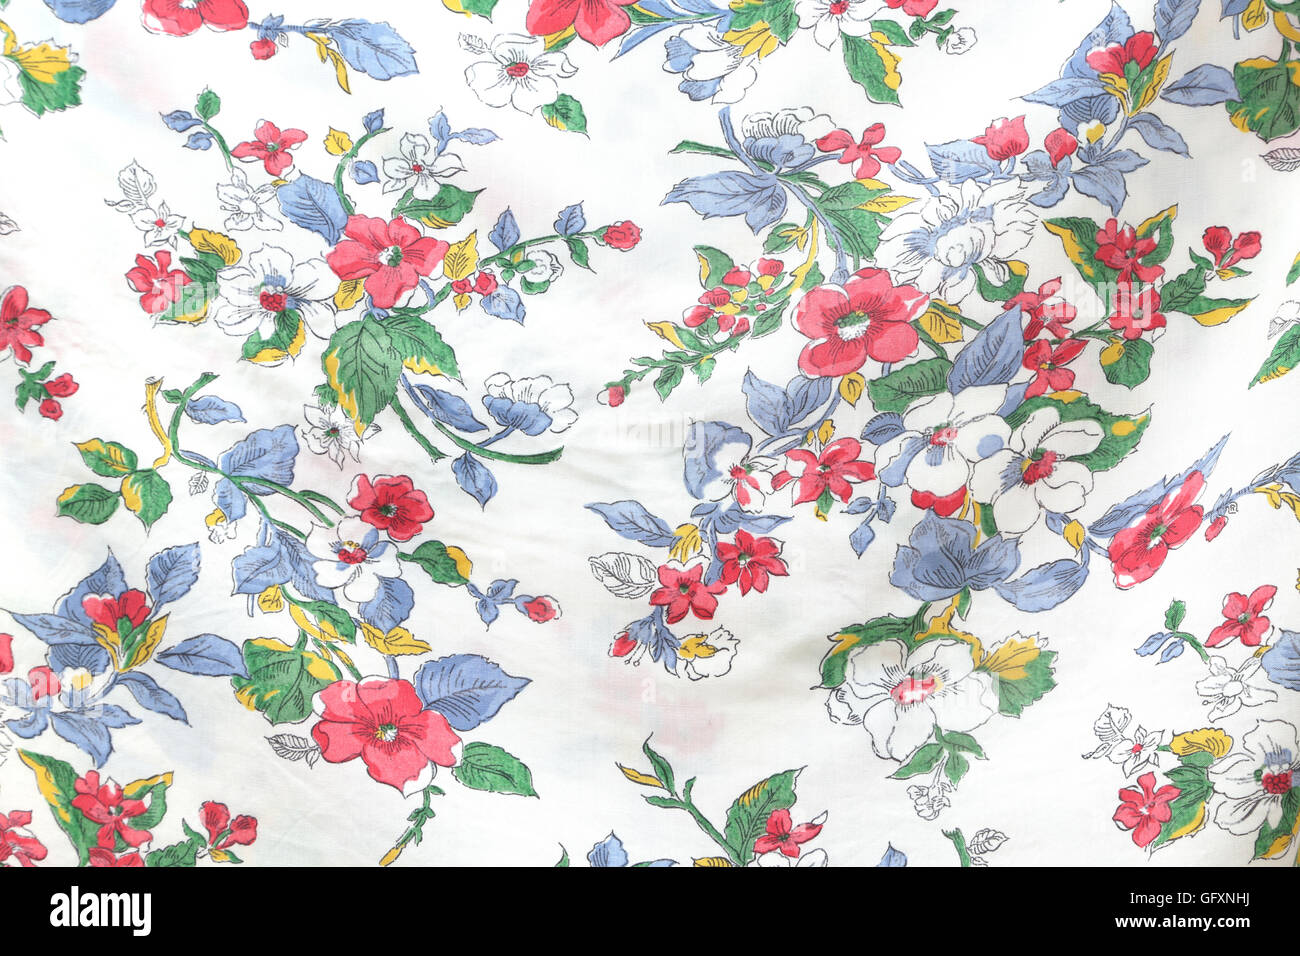 1950s Fabric Stockfotos & 1950s Fabric Bilder - Alamy